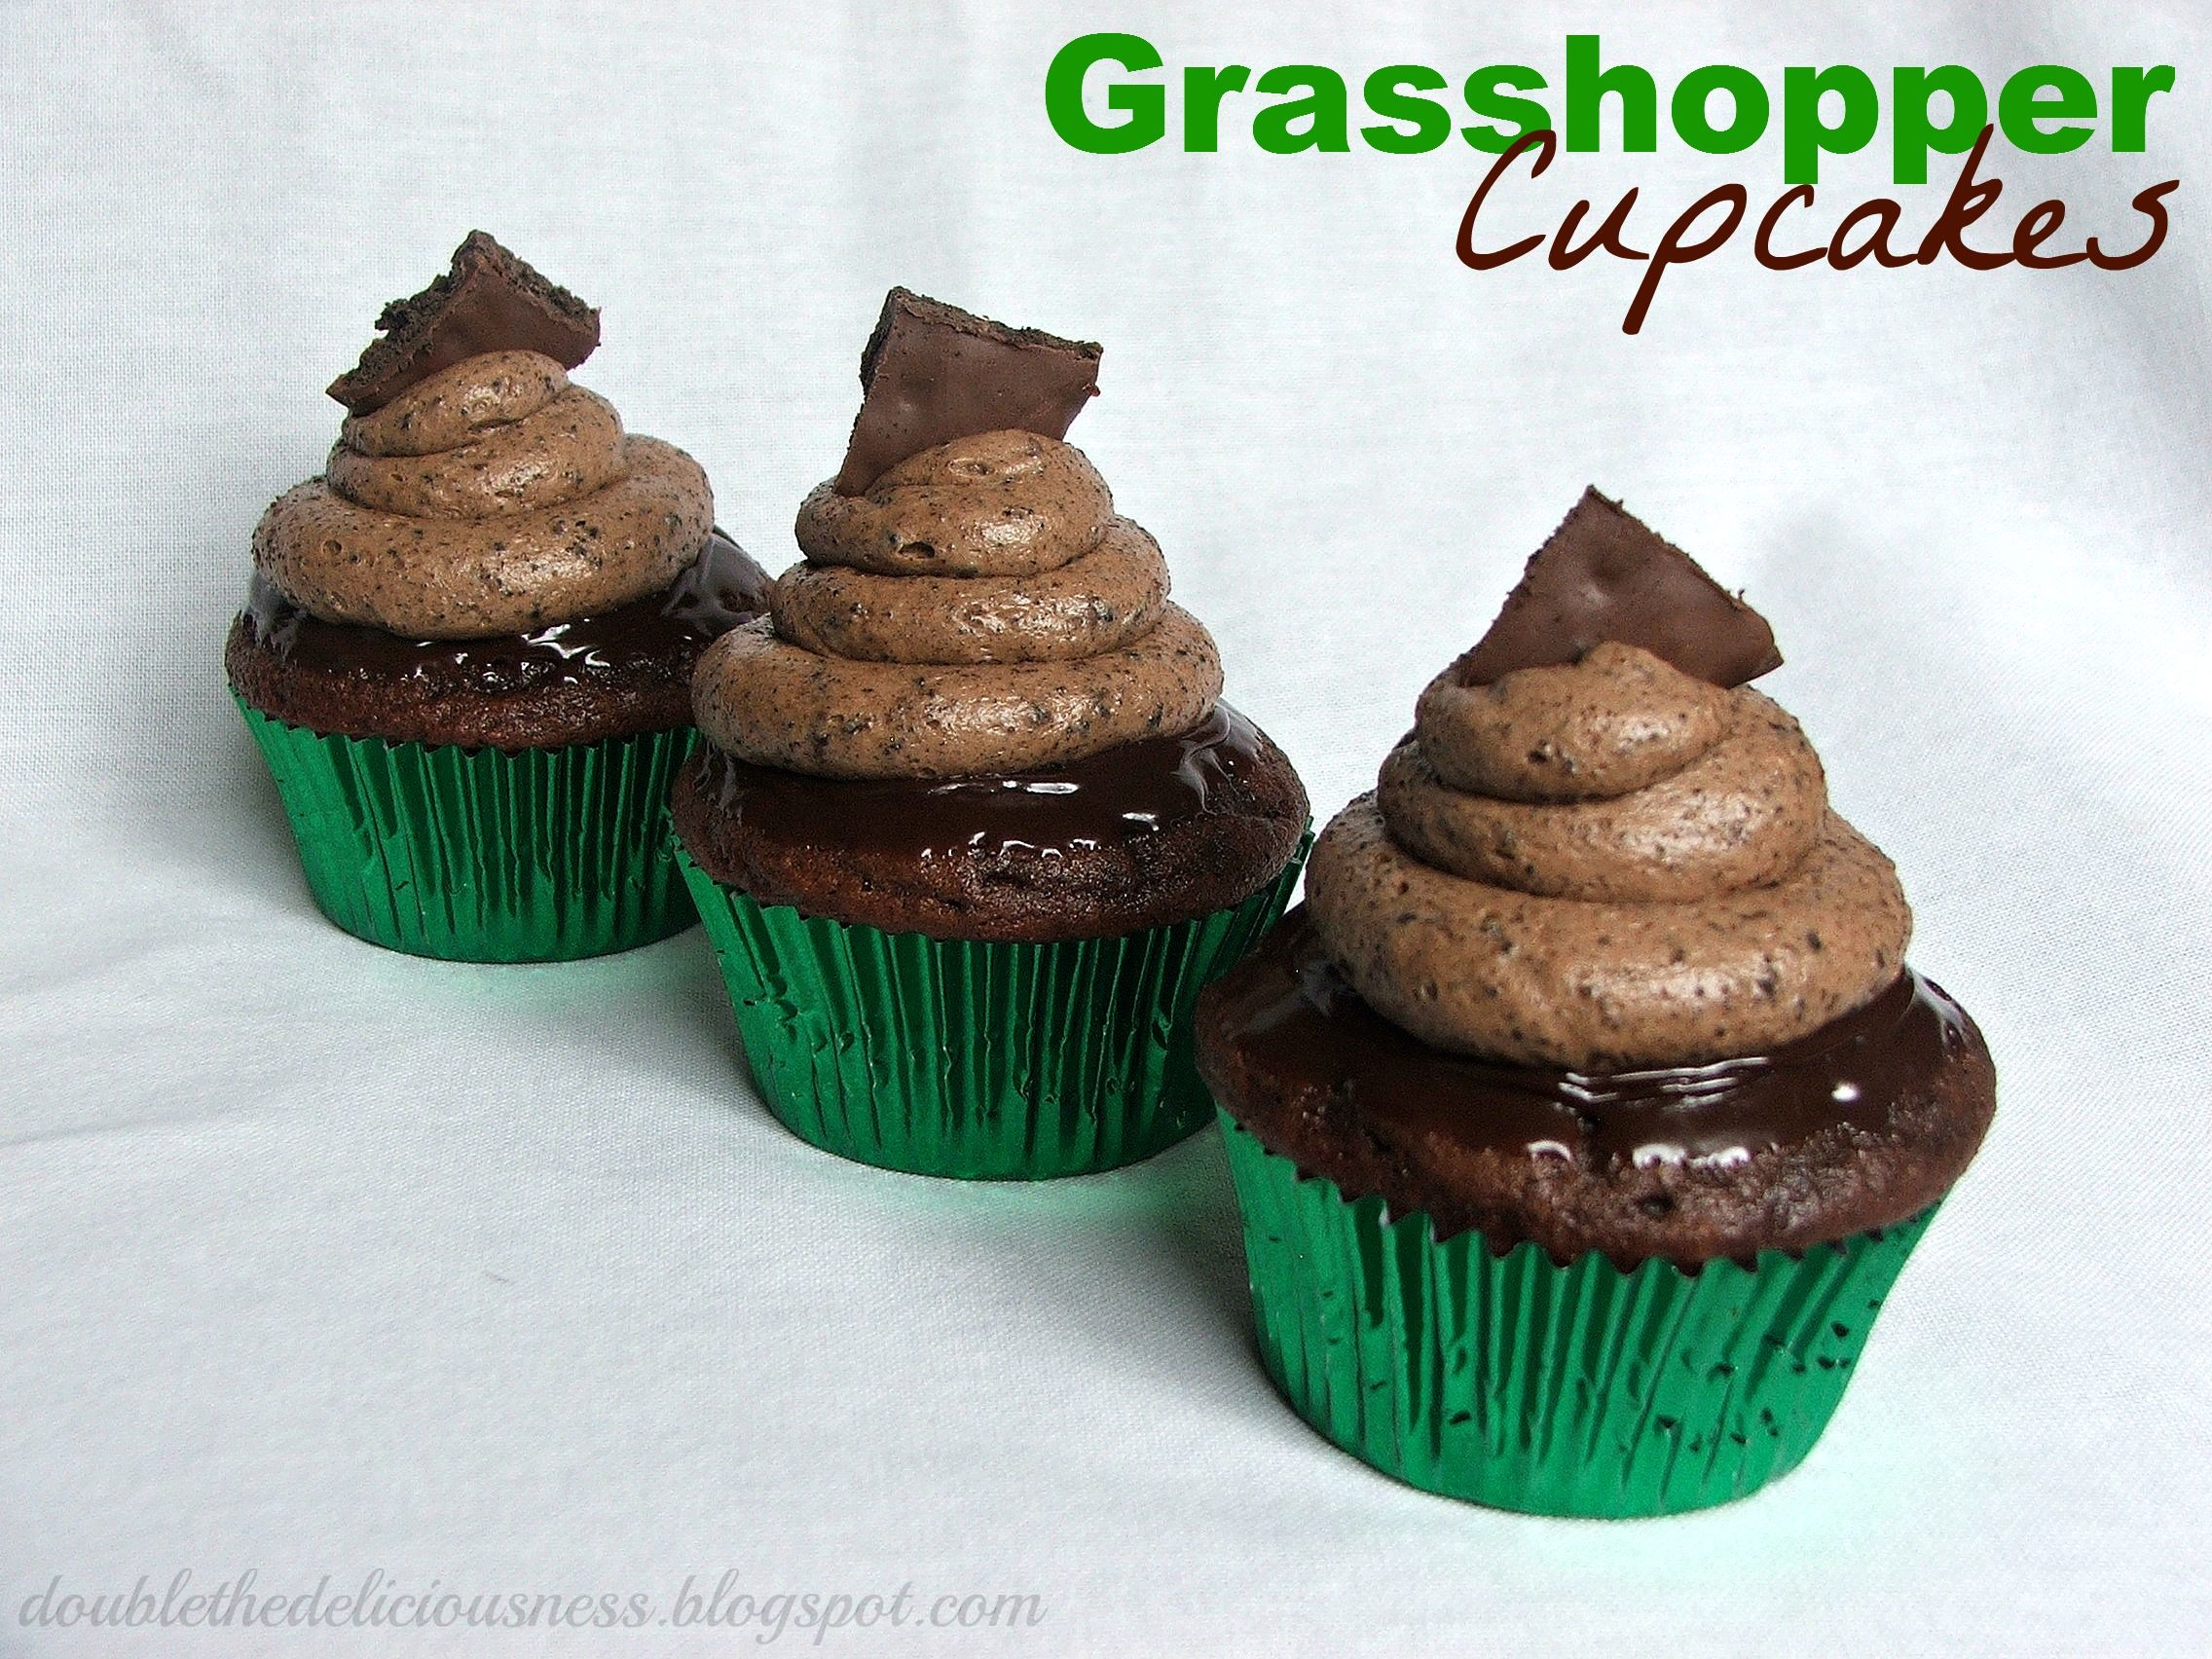 Grasshopper Cupcakes Recipe With Images Cupcake Cakes Cake